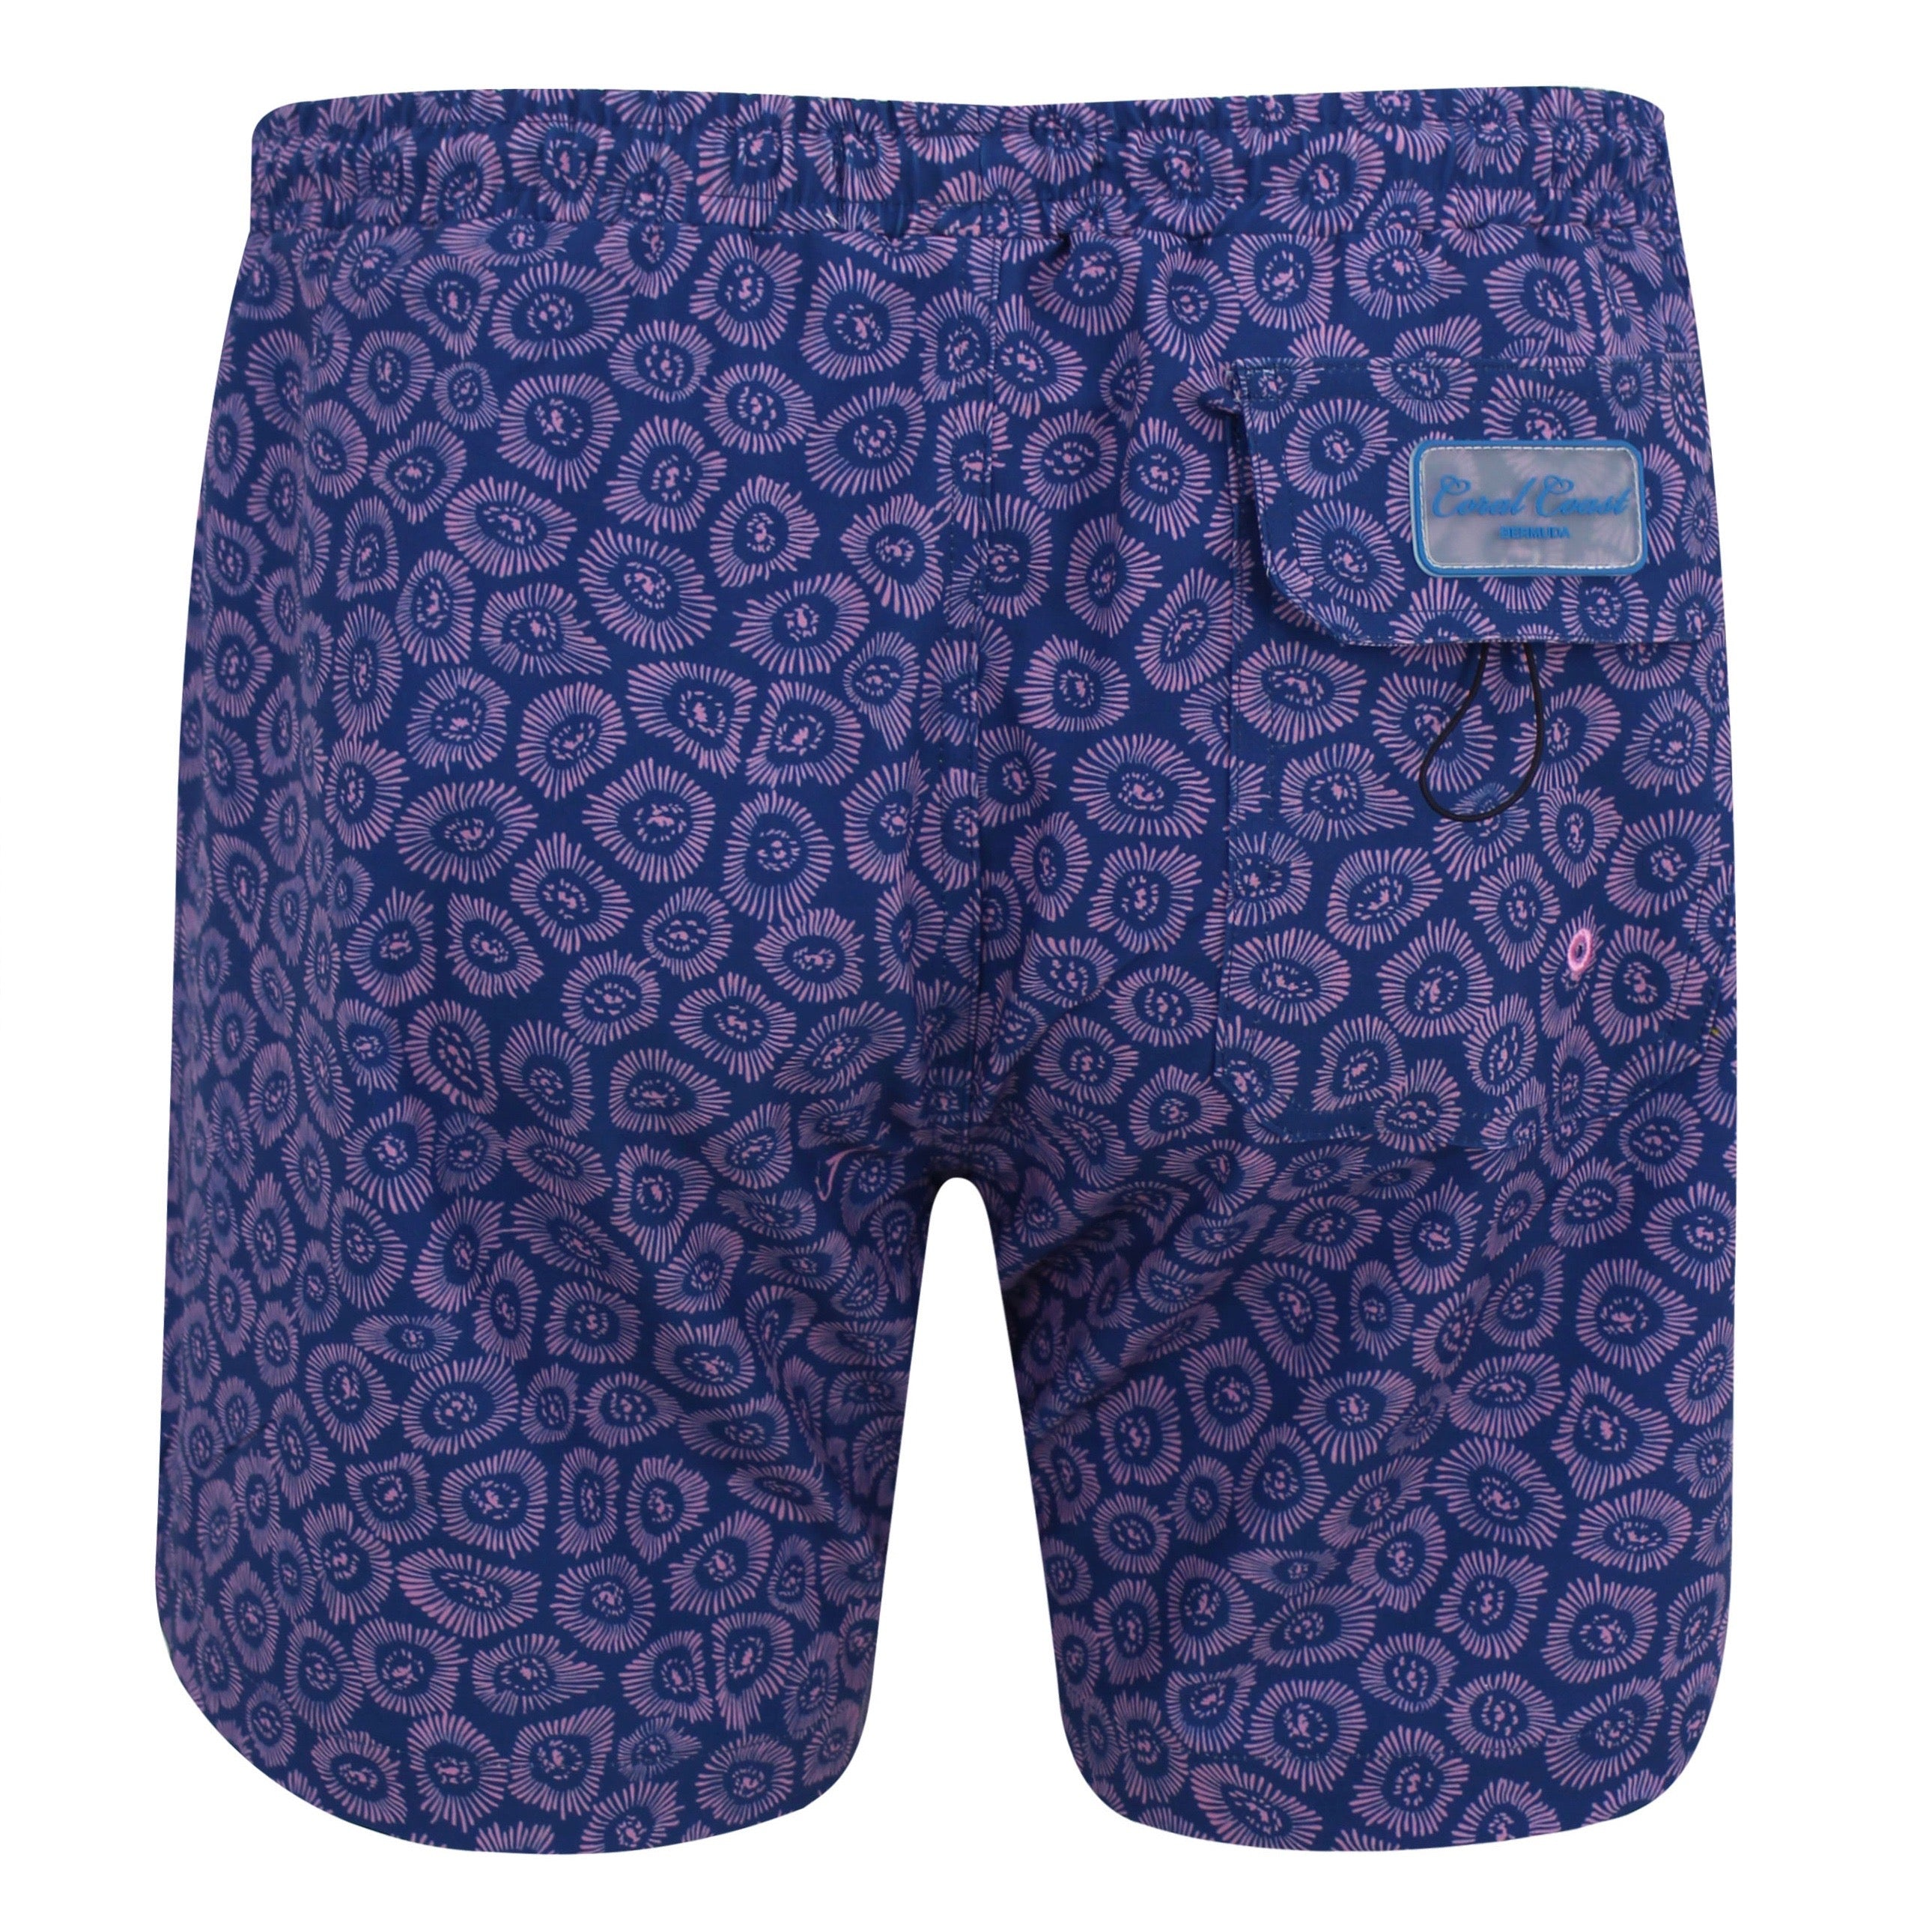 ZOANTHIDS NAVY SWIM TRUNK